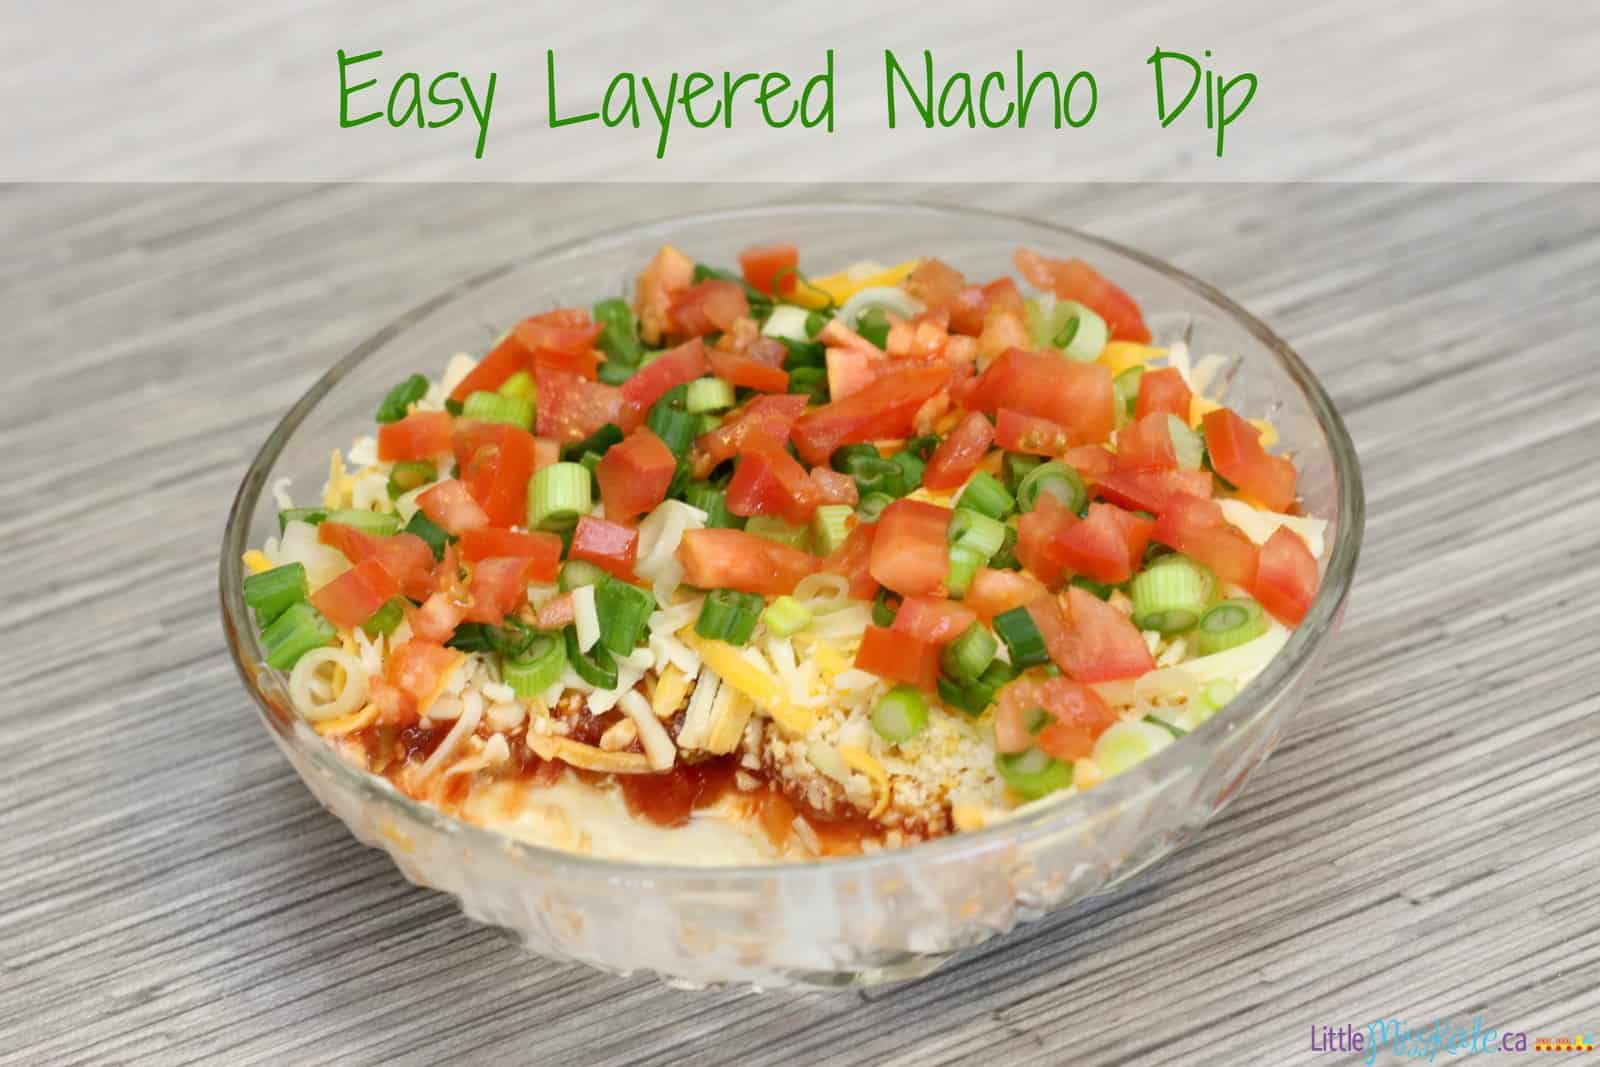 easy layered nacho dip recipe - super bowl recipe idea